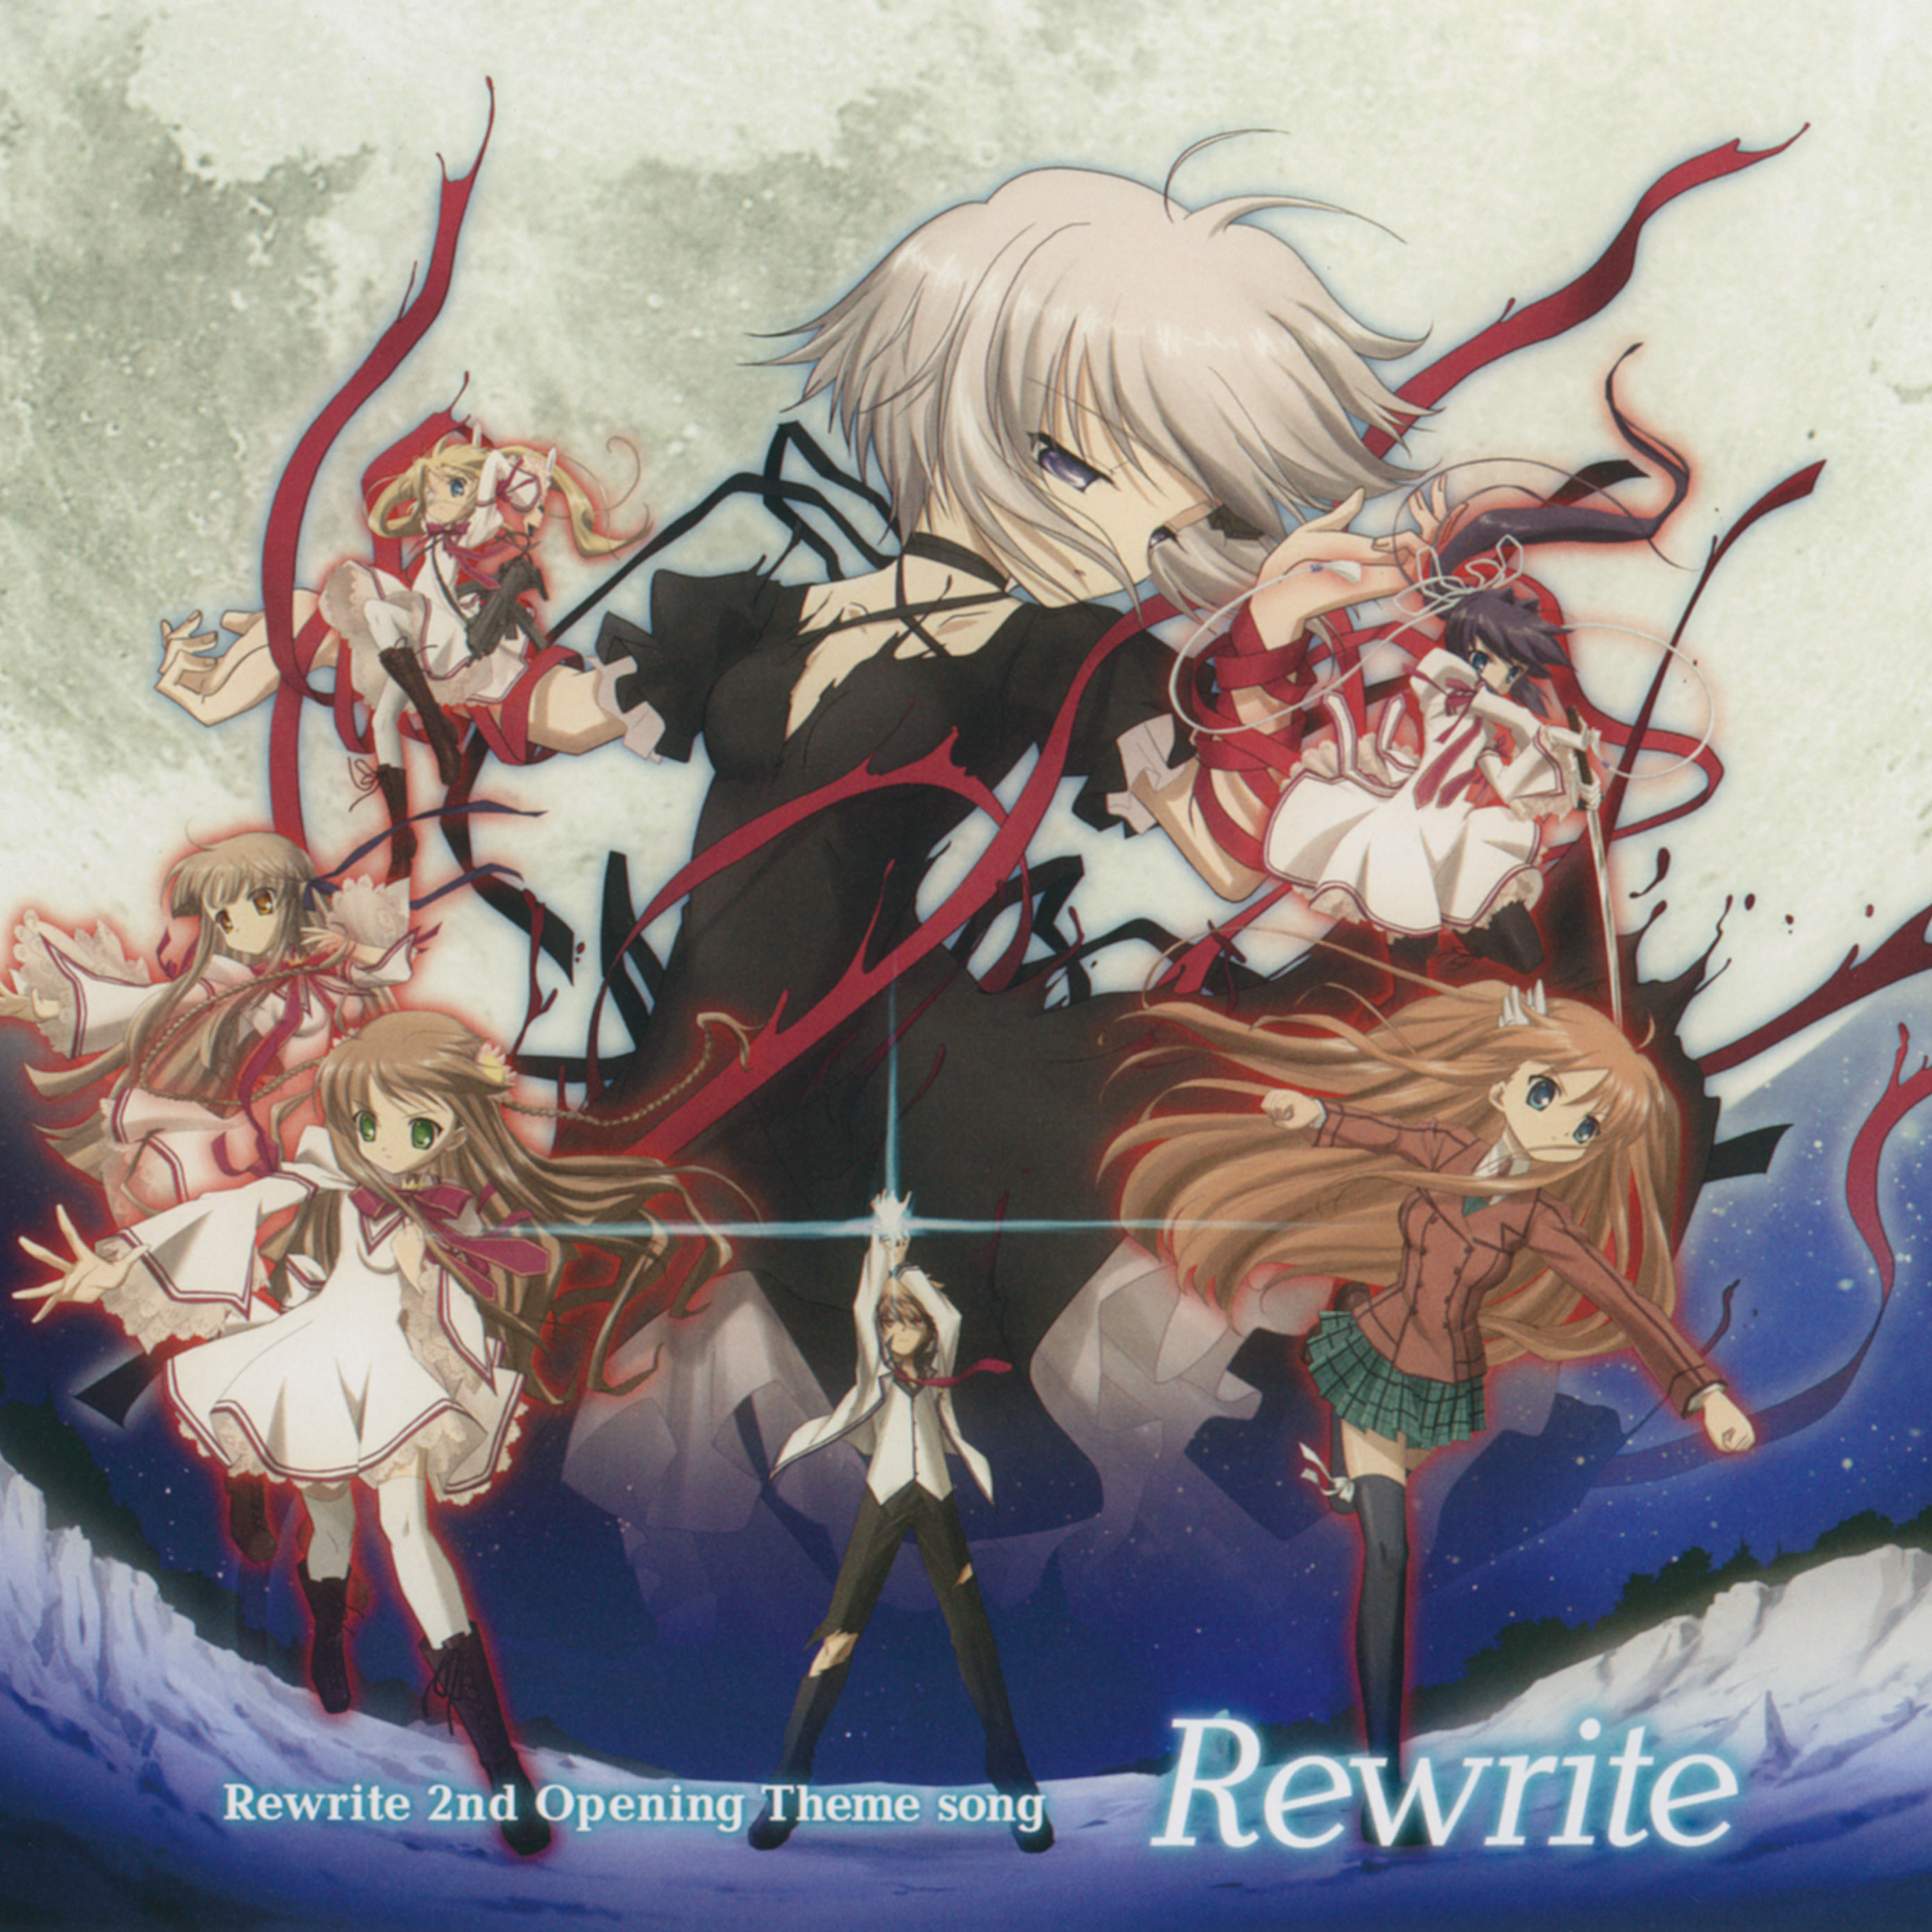 Rewrite 2nd Opening Theme song...